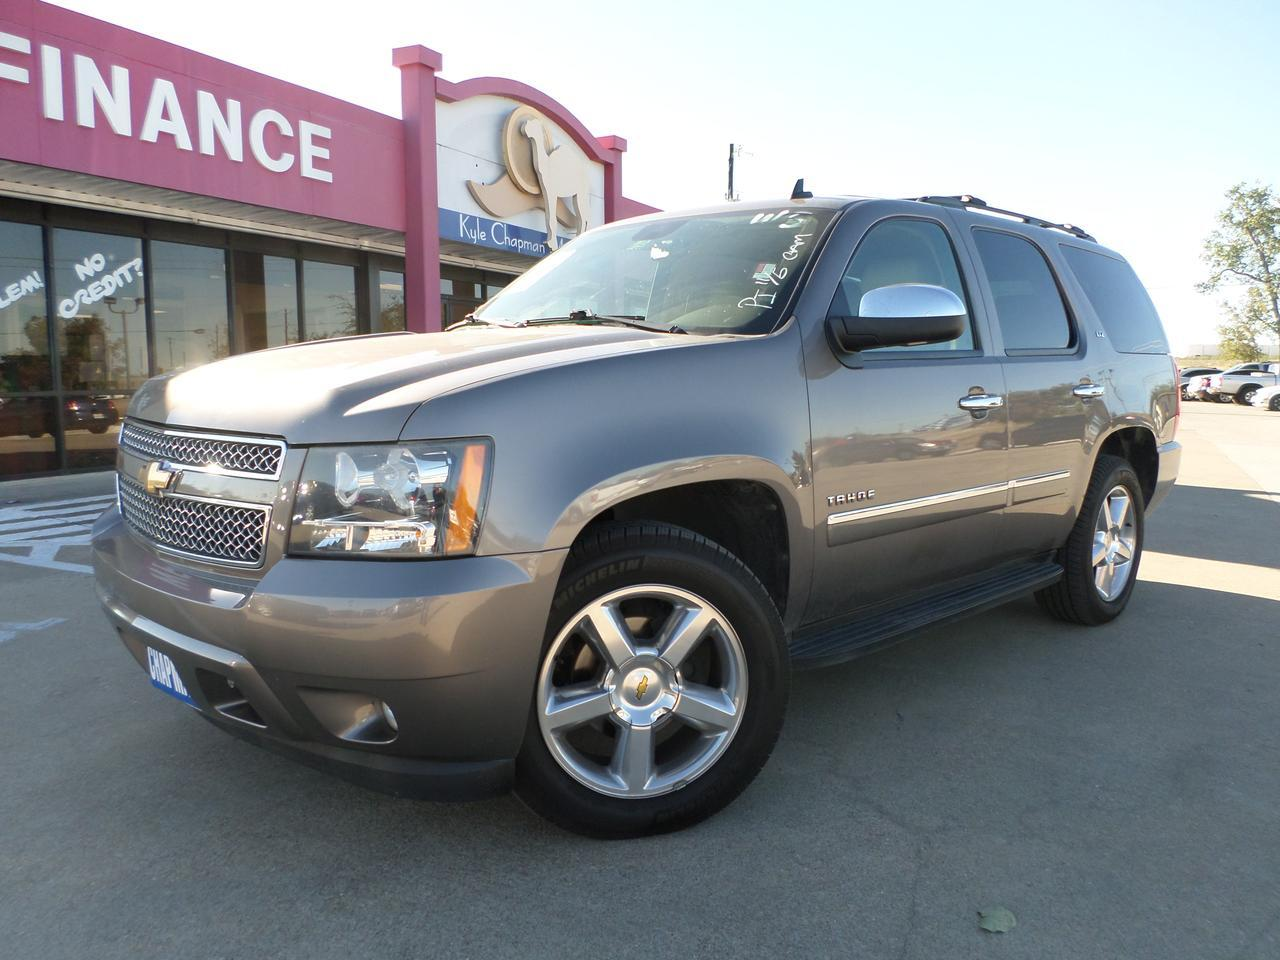 2011 Chevrolet Tahoe Remote Start, Nav, Leather, Sunroof,3rd Row, DVD